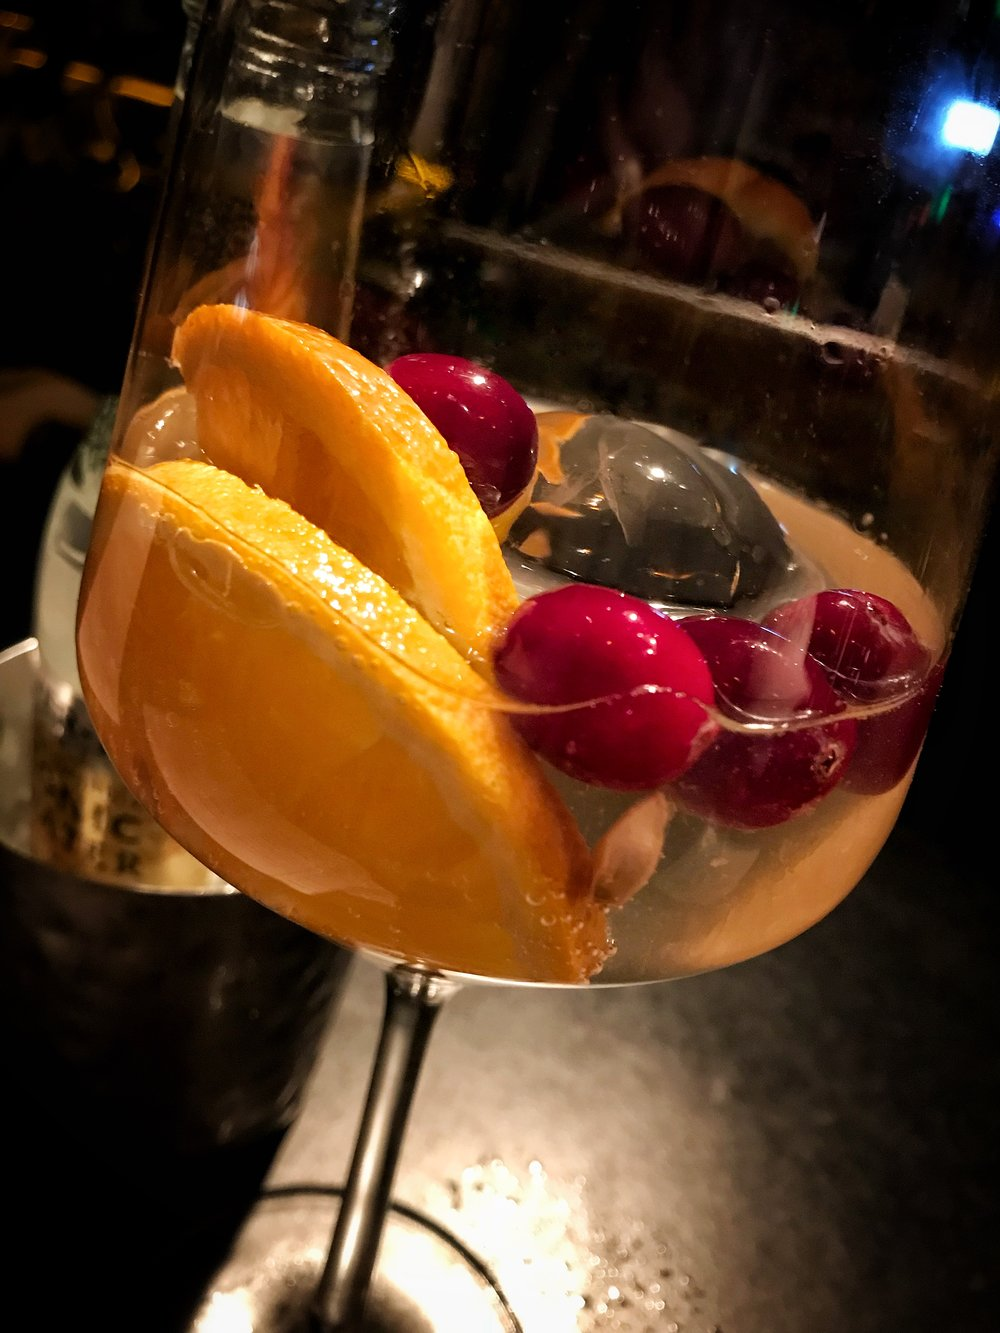 Monkey 47 gin with orange slices, cranberries, and Fever Tree Tonic Water (left).